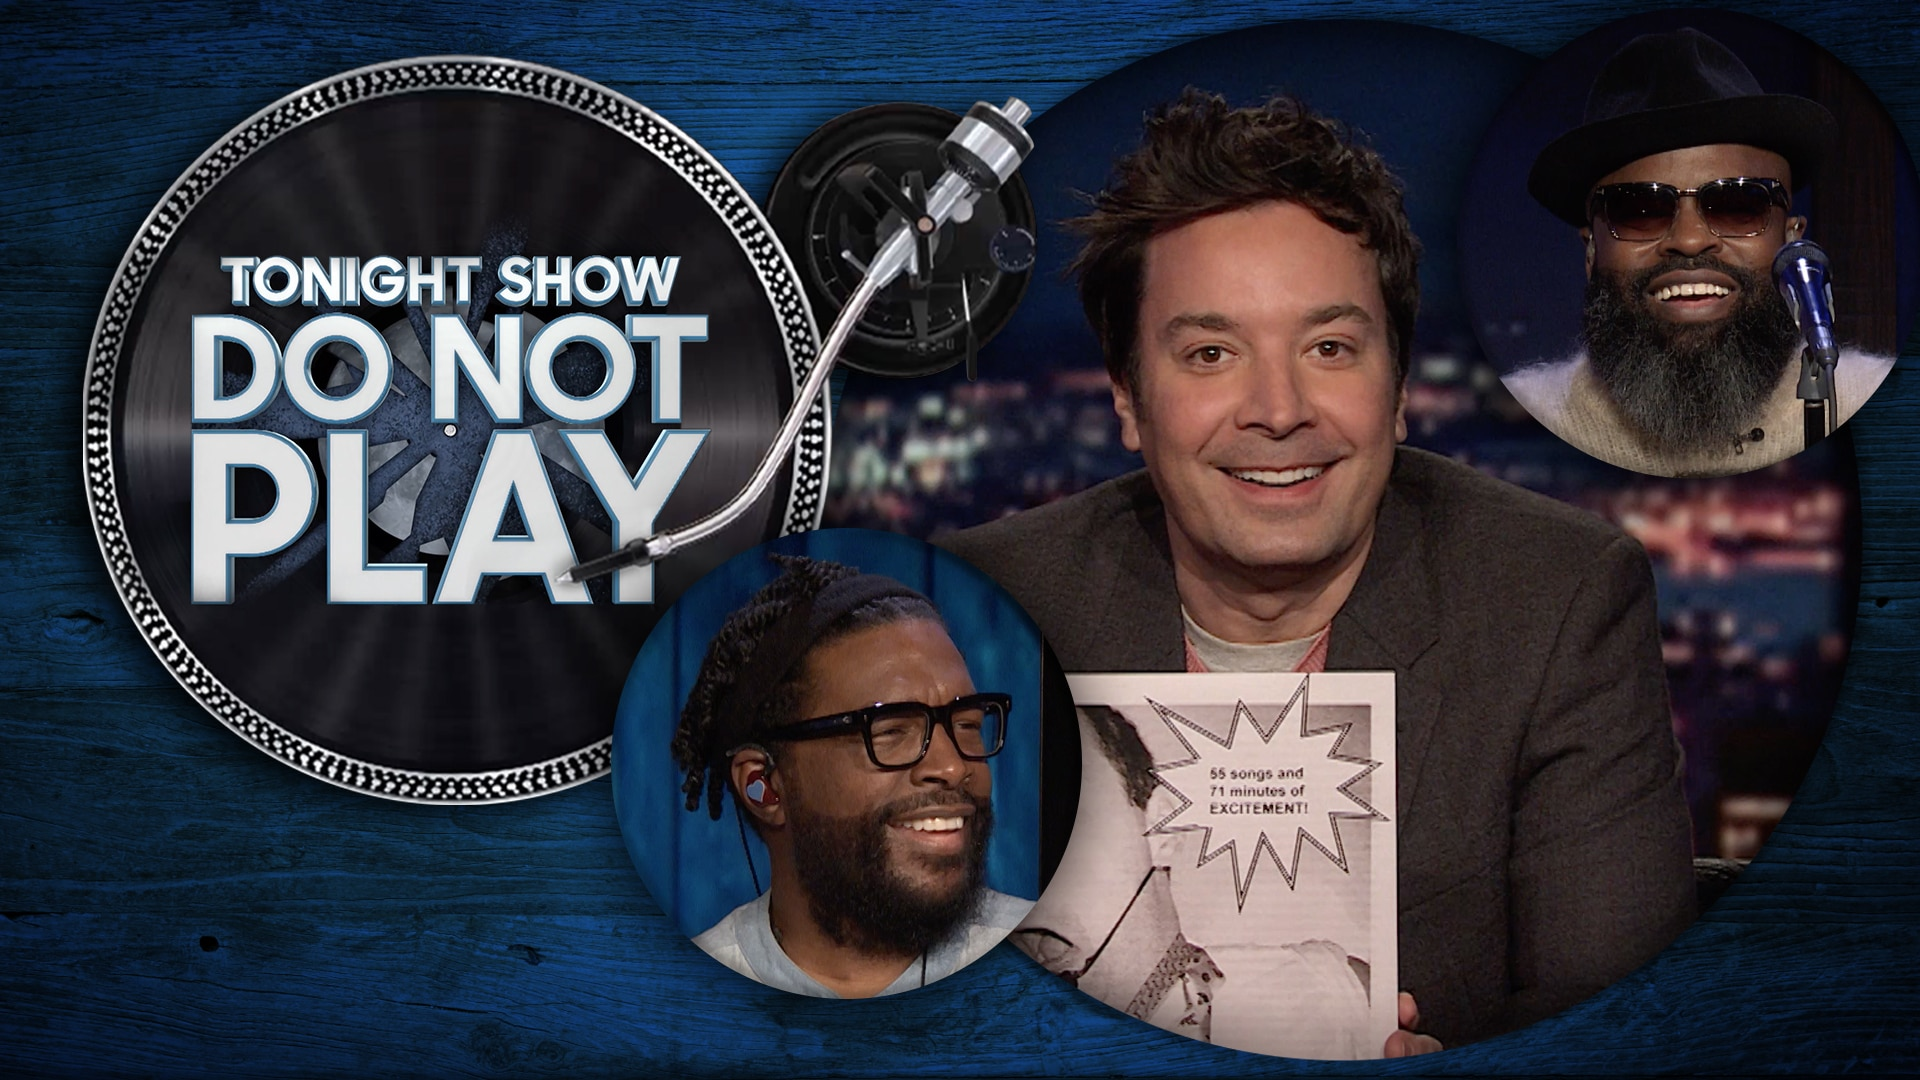 Jimmy Fallon Do Not Play Scooter